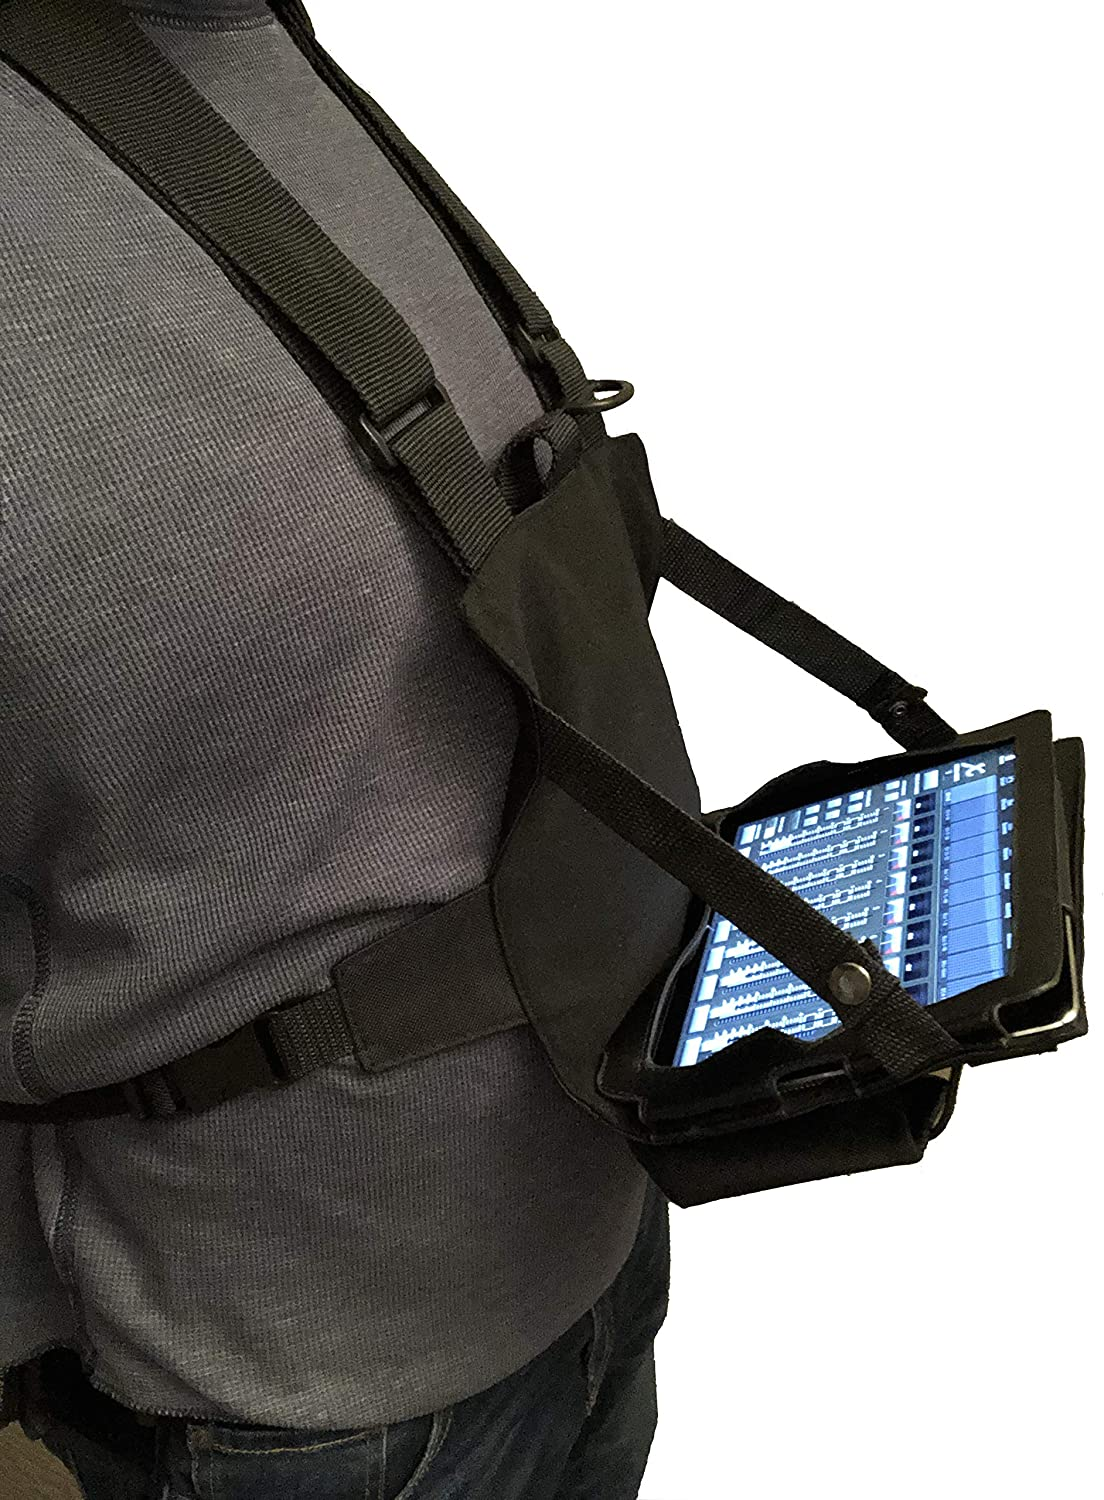 """Gig Gear Two Hand Touch Tablet Chest Harness for 12.9"""" Devices. Compatible with iPad/Galaxy/Surface - Rugged, Heavy Duty, Durable Case and Chest Pack"""